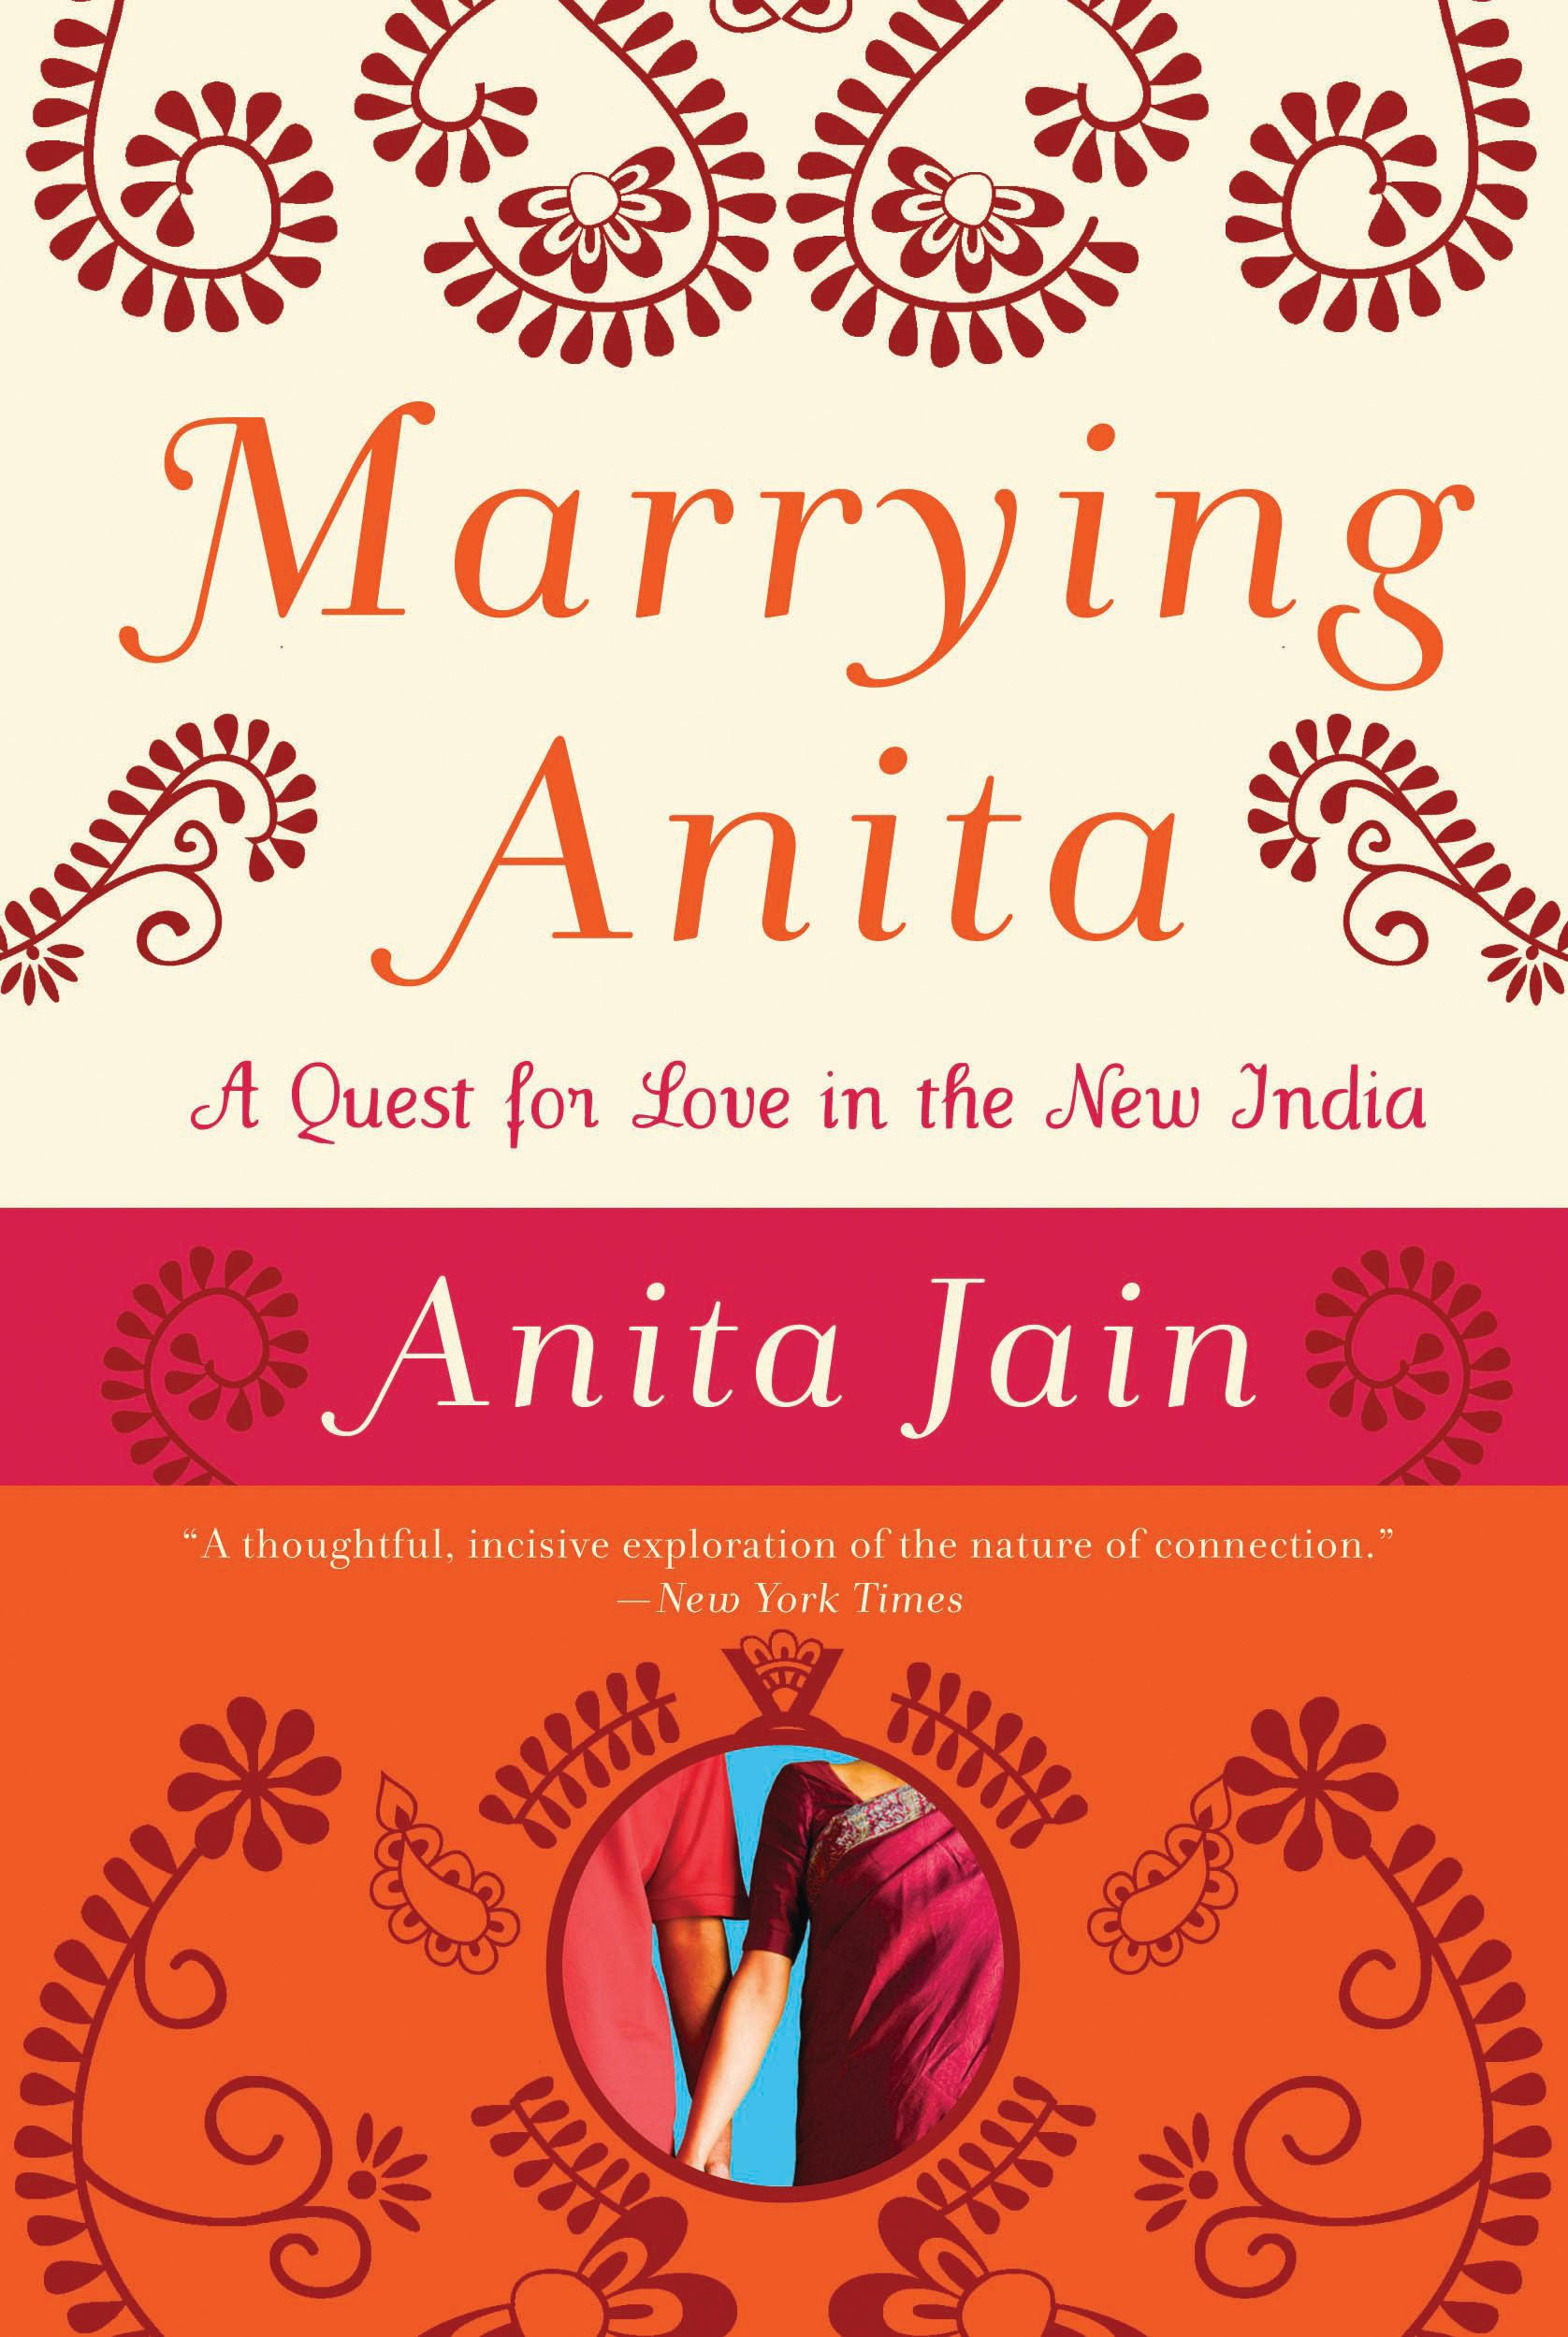 Marrying Anita: A Quest for Love in the New India By: Anita Jain